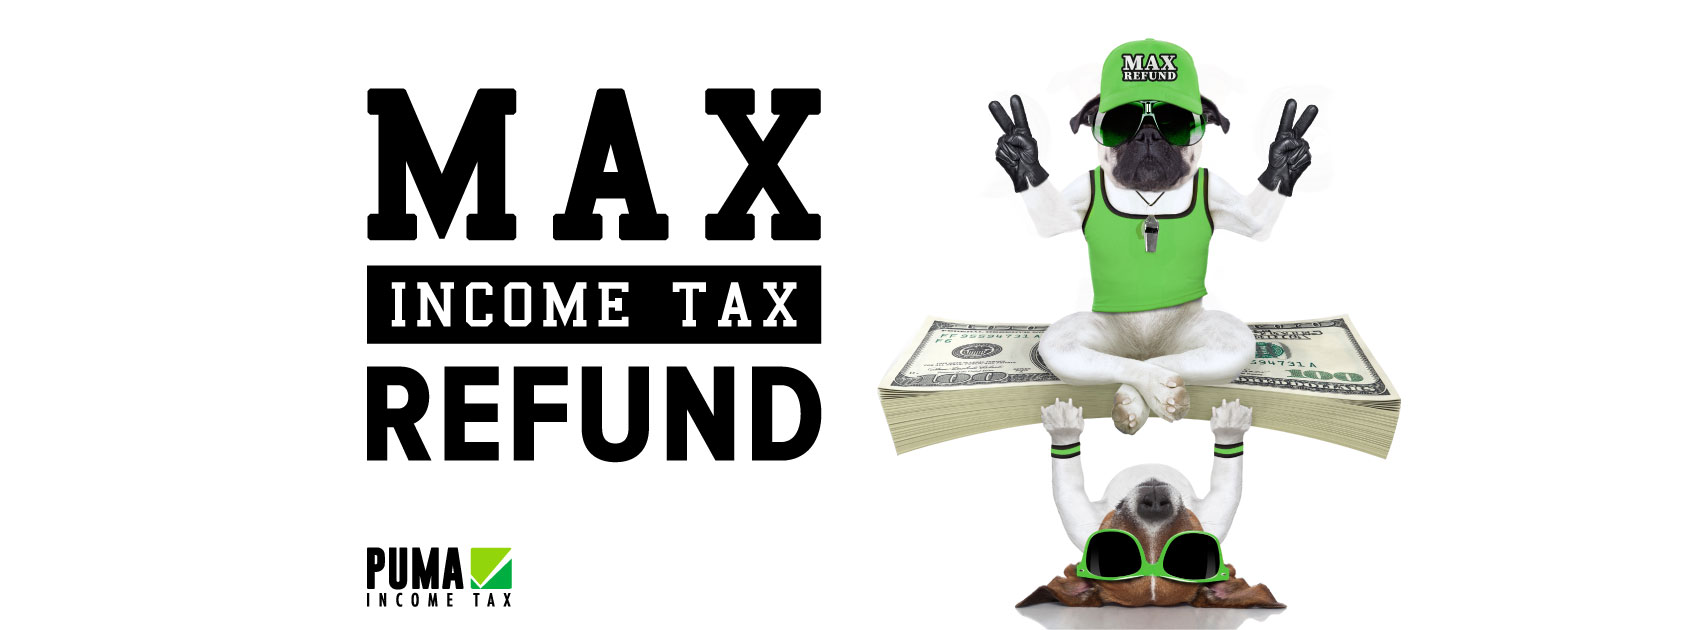 18_PA_SOCIAL_FACEBOOK_COVER_IMAGE_MAX_WEIGHT_REFUND.jpg